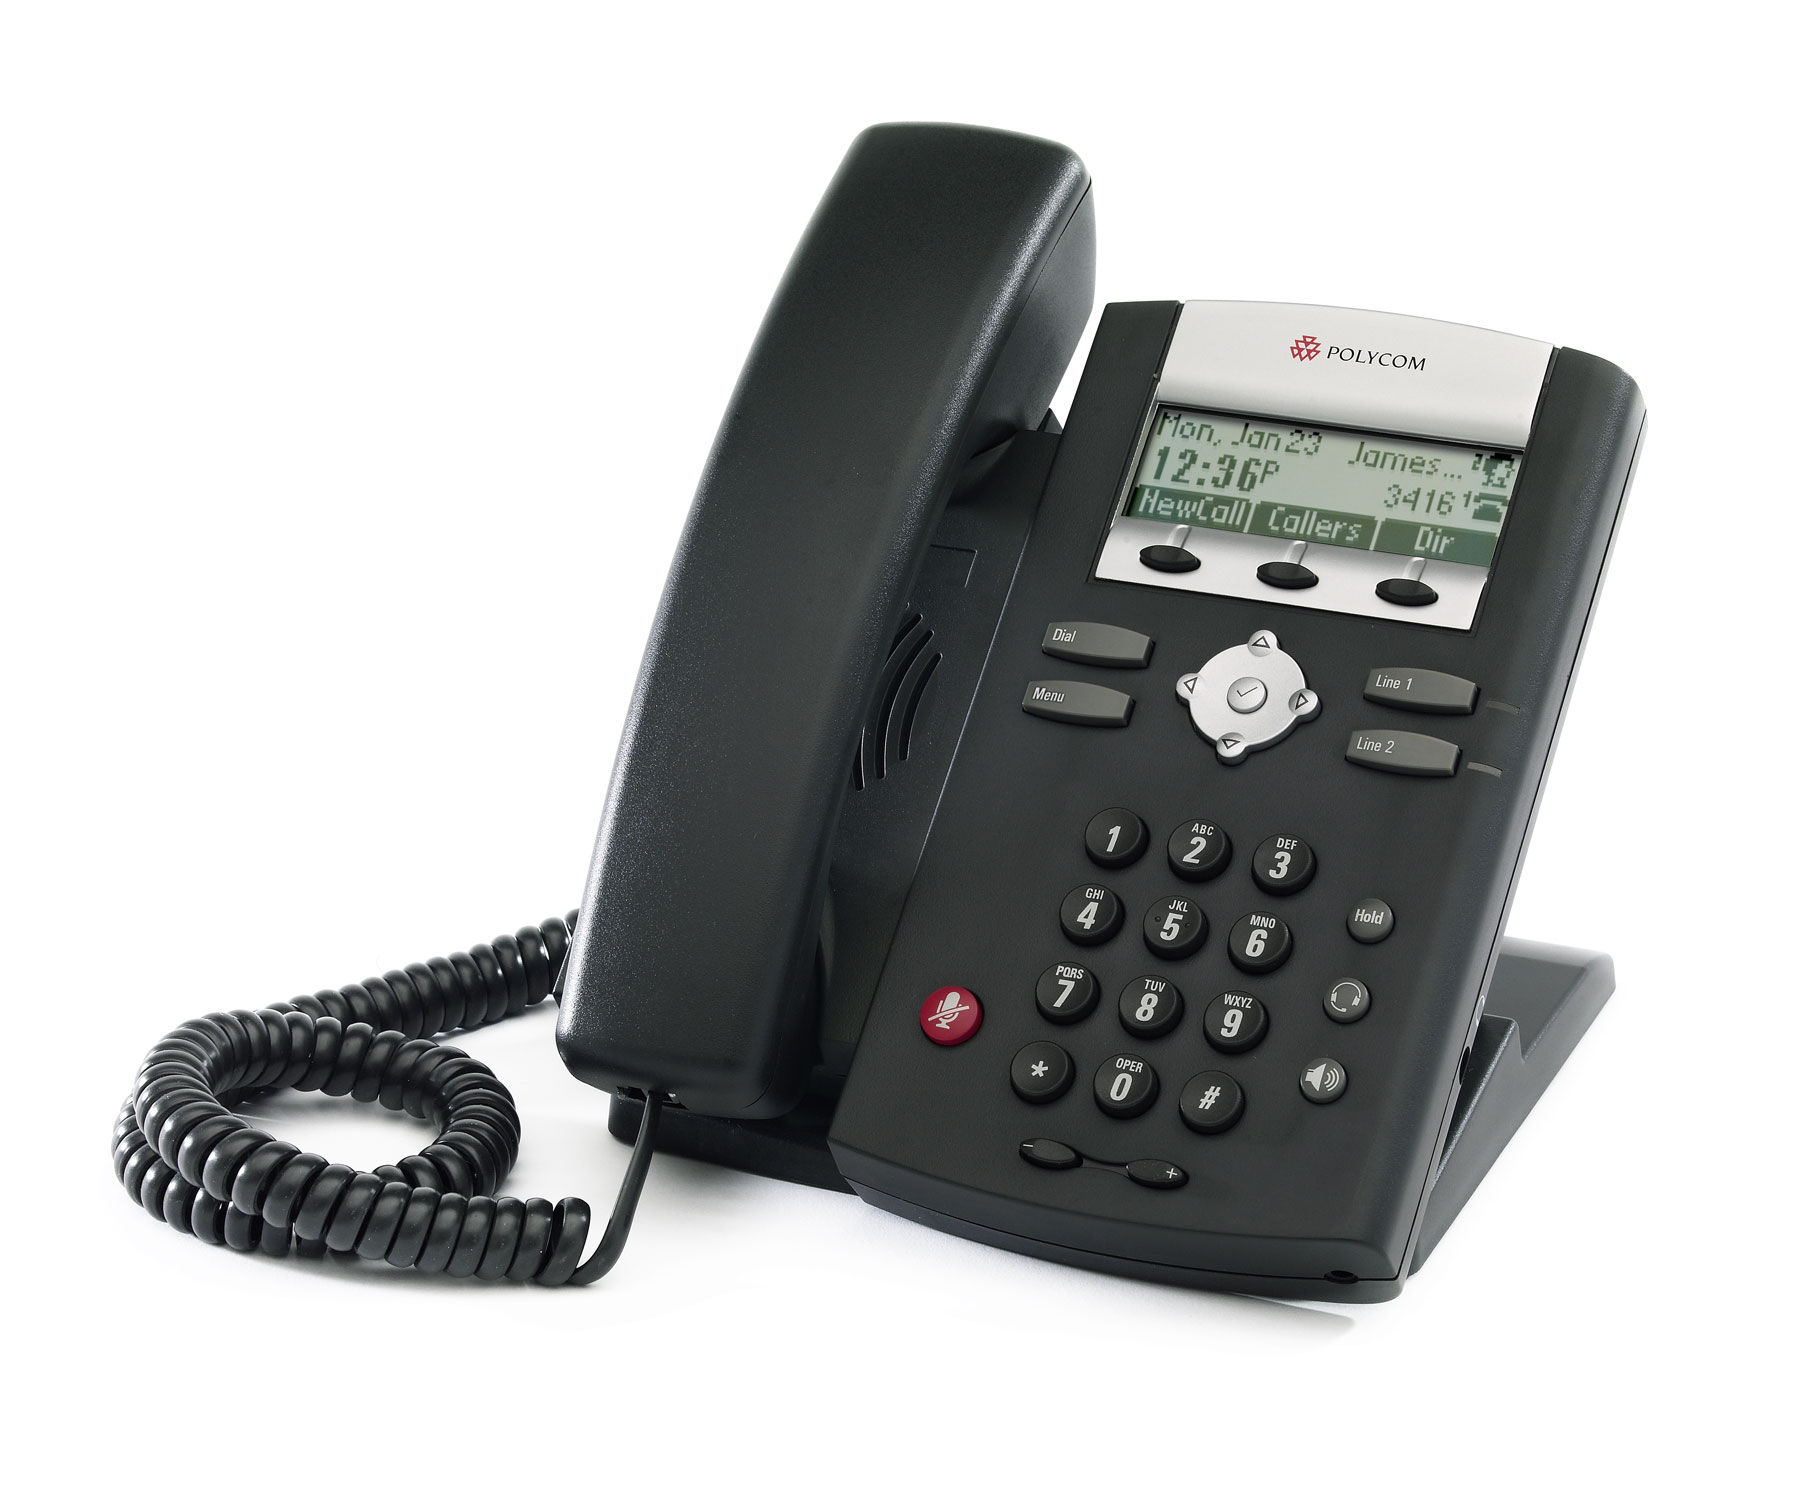 phones rh gtcnetworks com polycom soundpoint ip 430 manual Polycom SoundPoint Pro